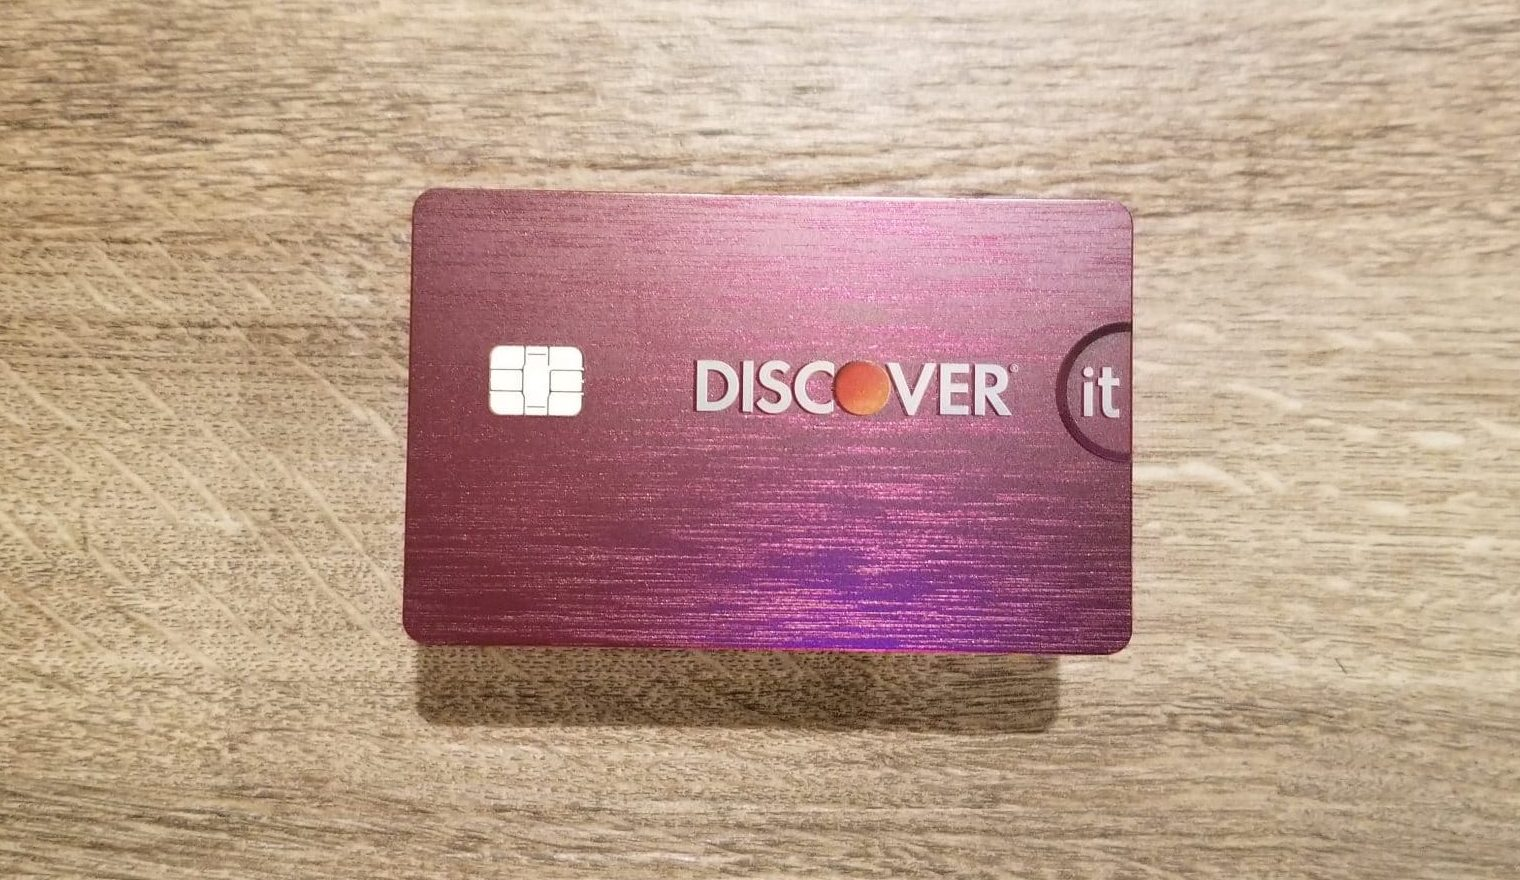 Select Discover Cardholders Can Earn Up to 3% Extra Cash Back